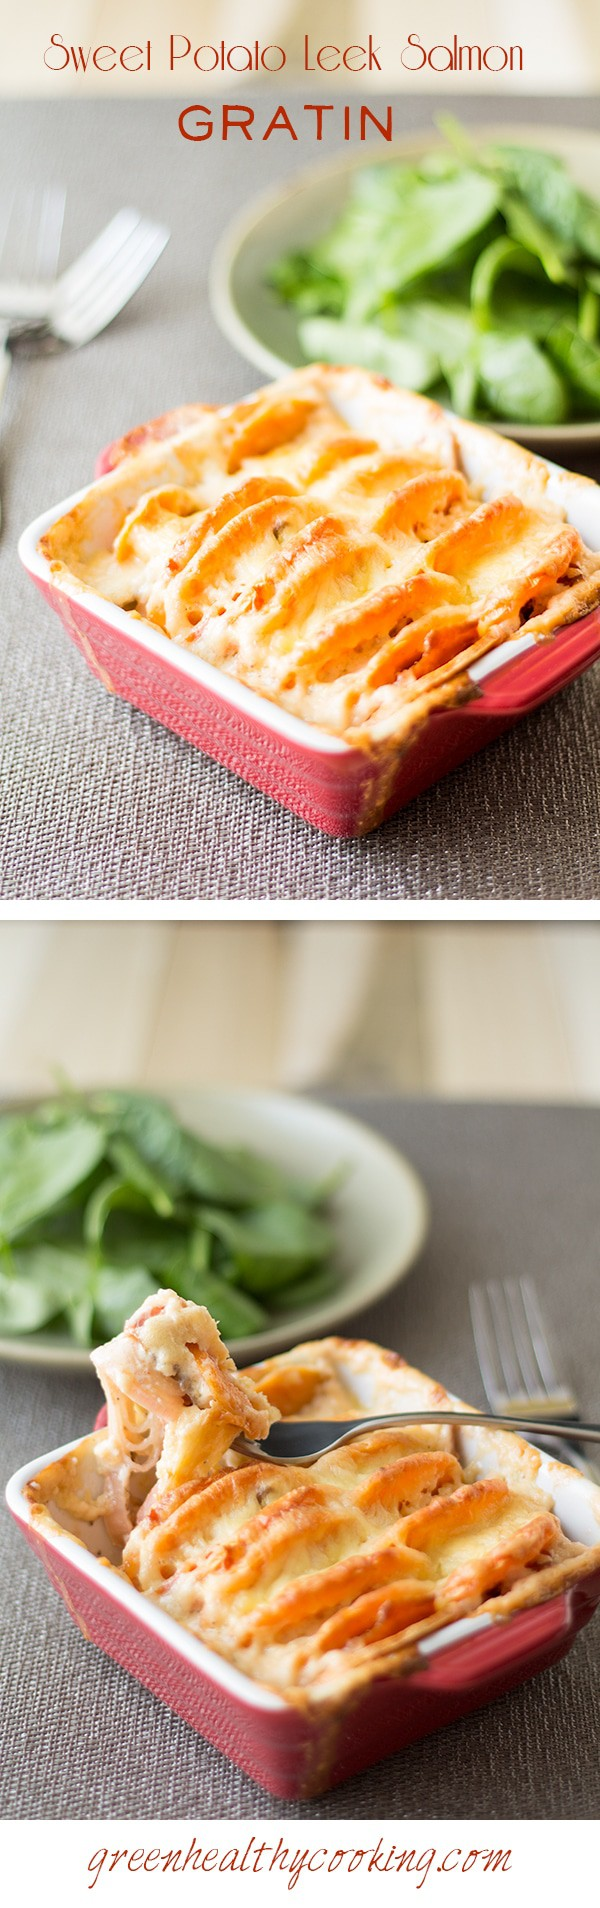 Collage of Sweet Potato Leek Salmon Gratin images with text overlay for Pinterest.